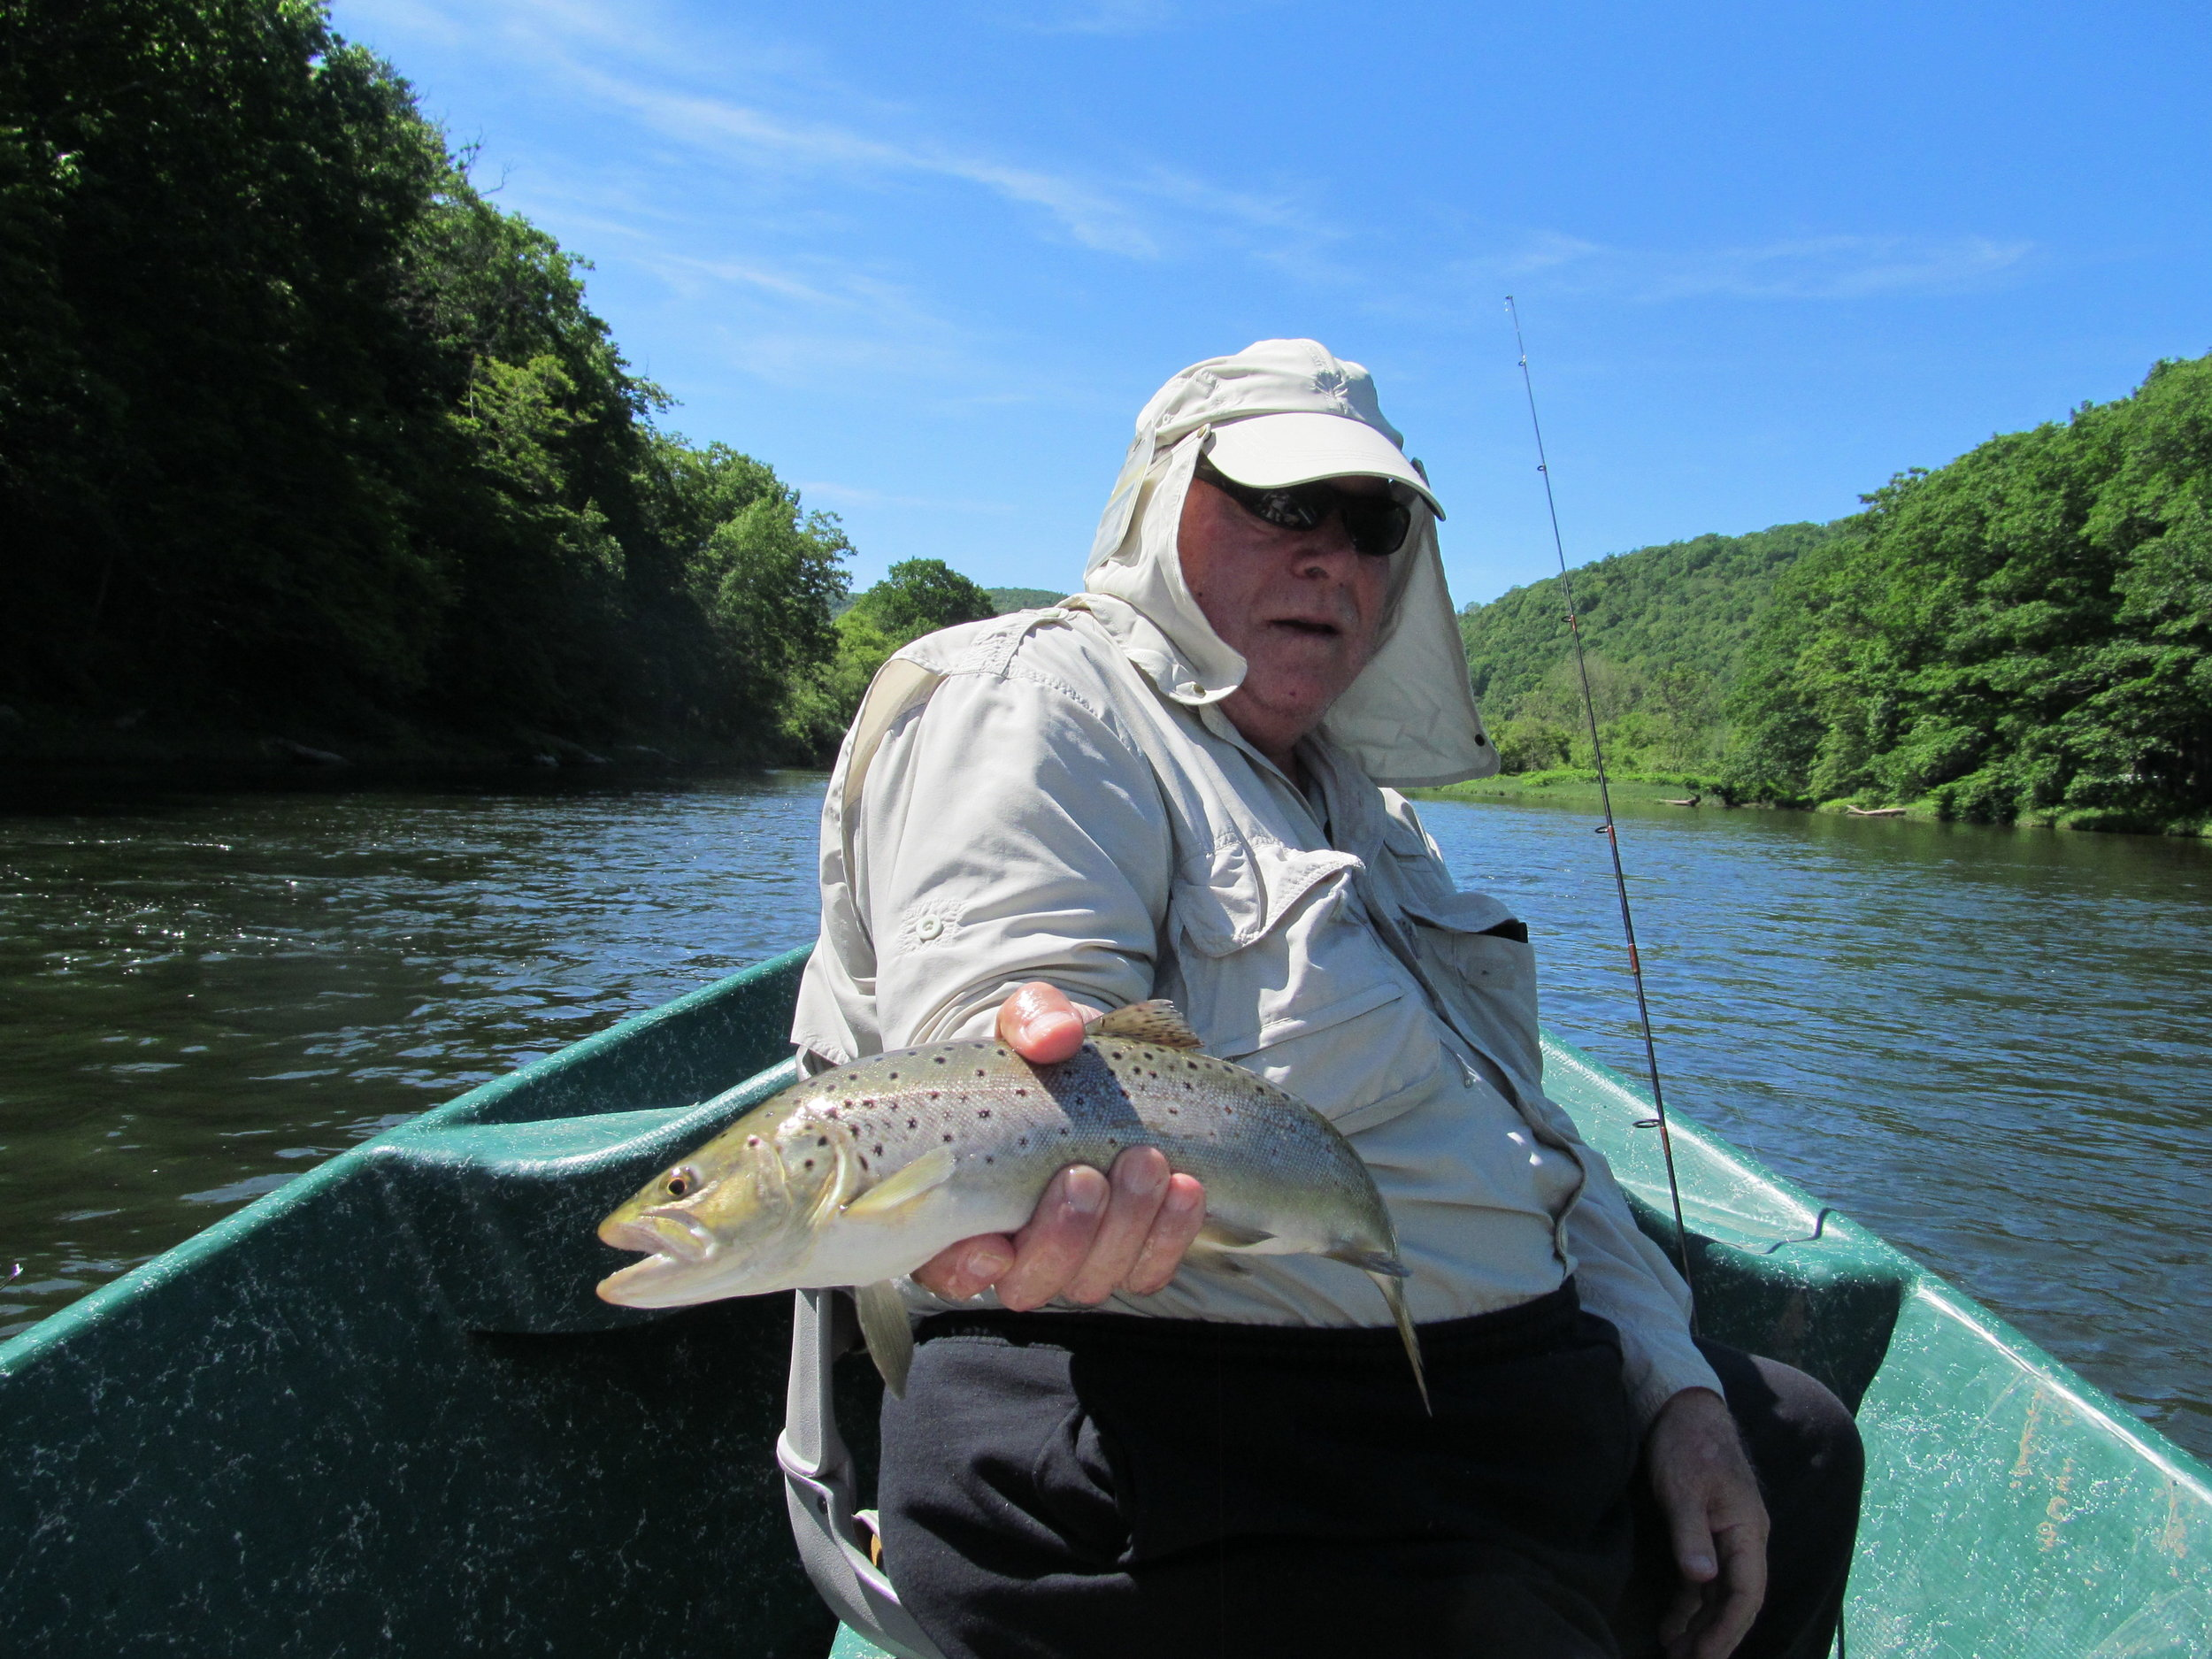 Tom G. holding a prize West Branch Brown trout.